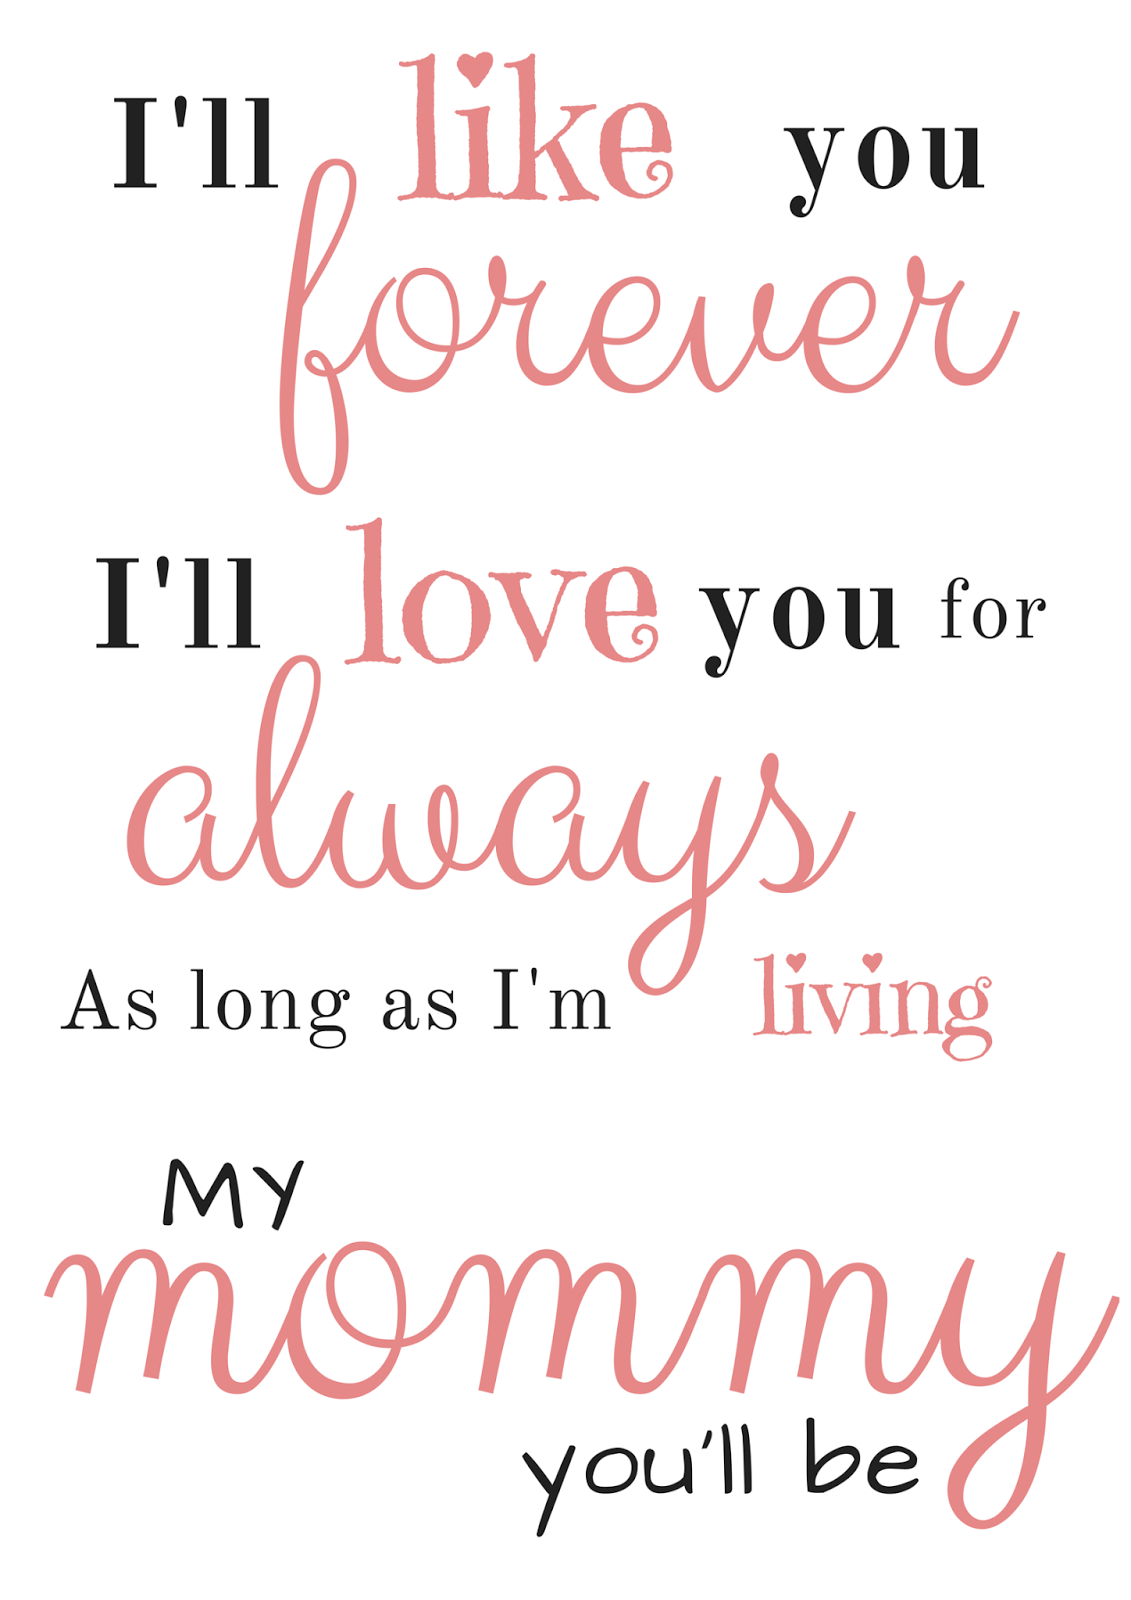 I Ll Love You Forever Quote Robert Munsch Love You Forever Quotes  Page 6  The Best Love Quotes